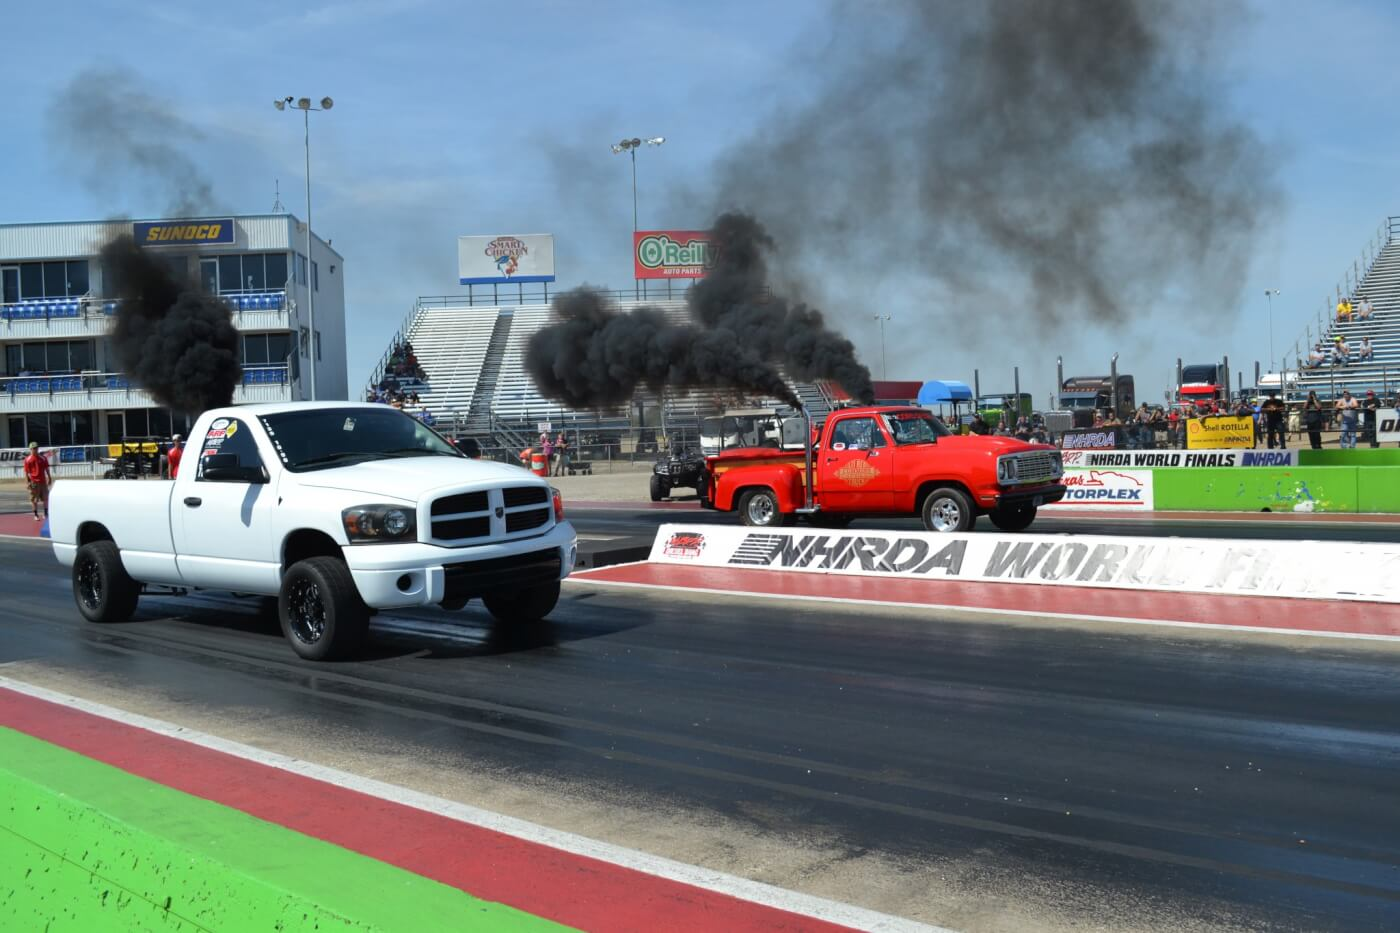 """The NHRDA's 10.90 Index class was also a very competitive category, with Max Kirtley in the """"Little Red Cummins Express"""" taking the win in the finals with a 10.91-second time."""